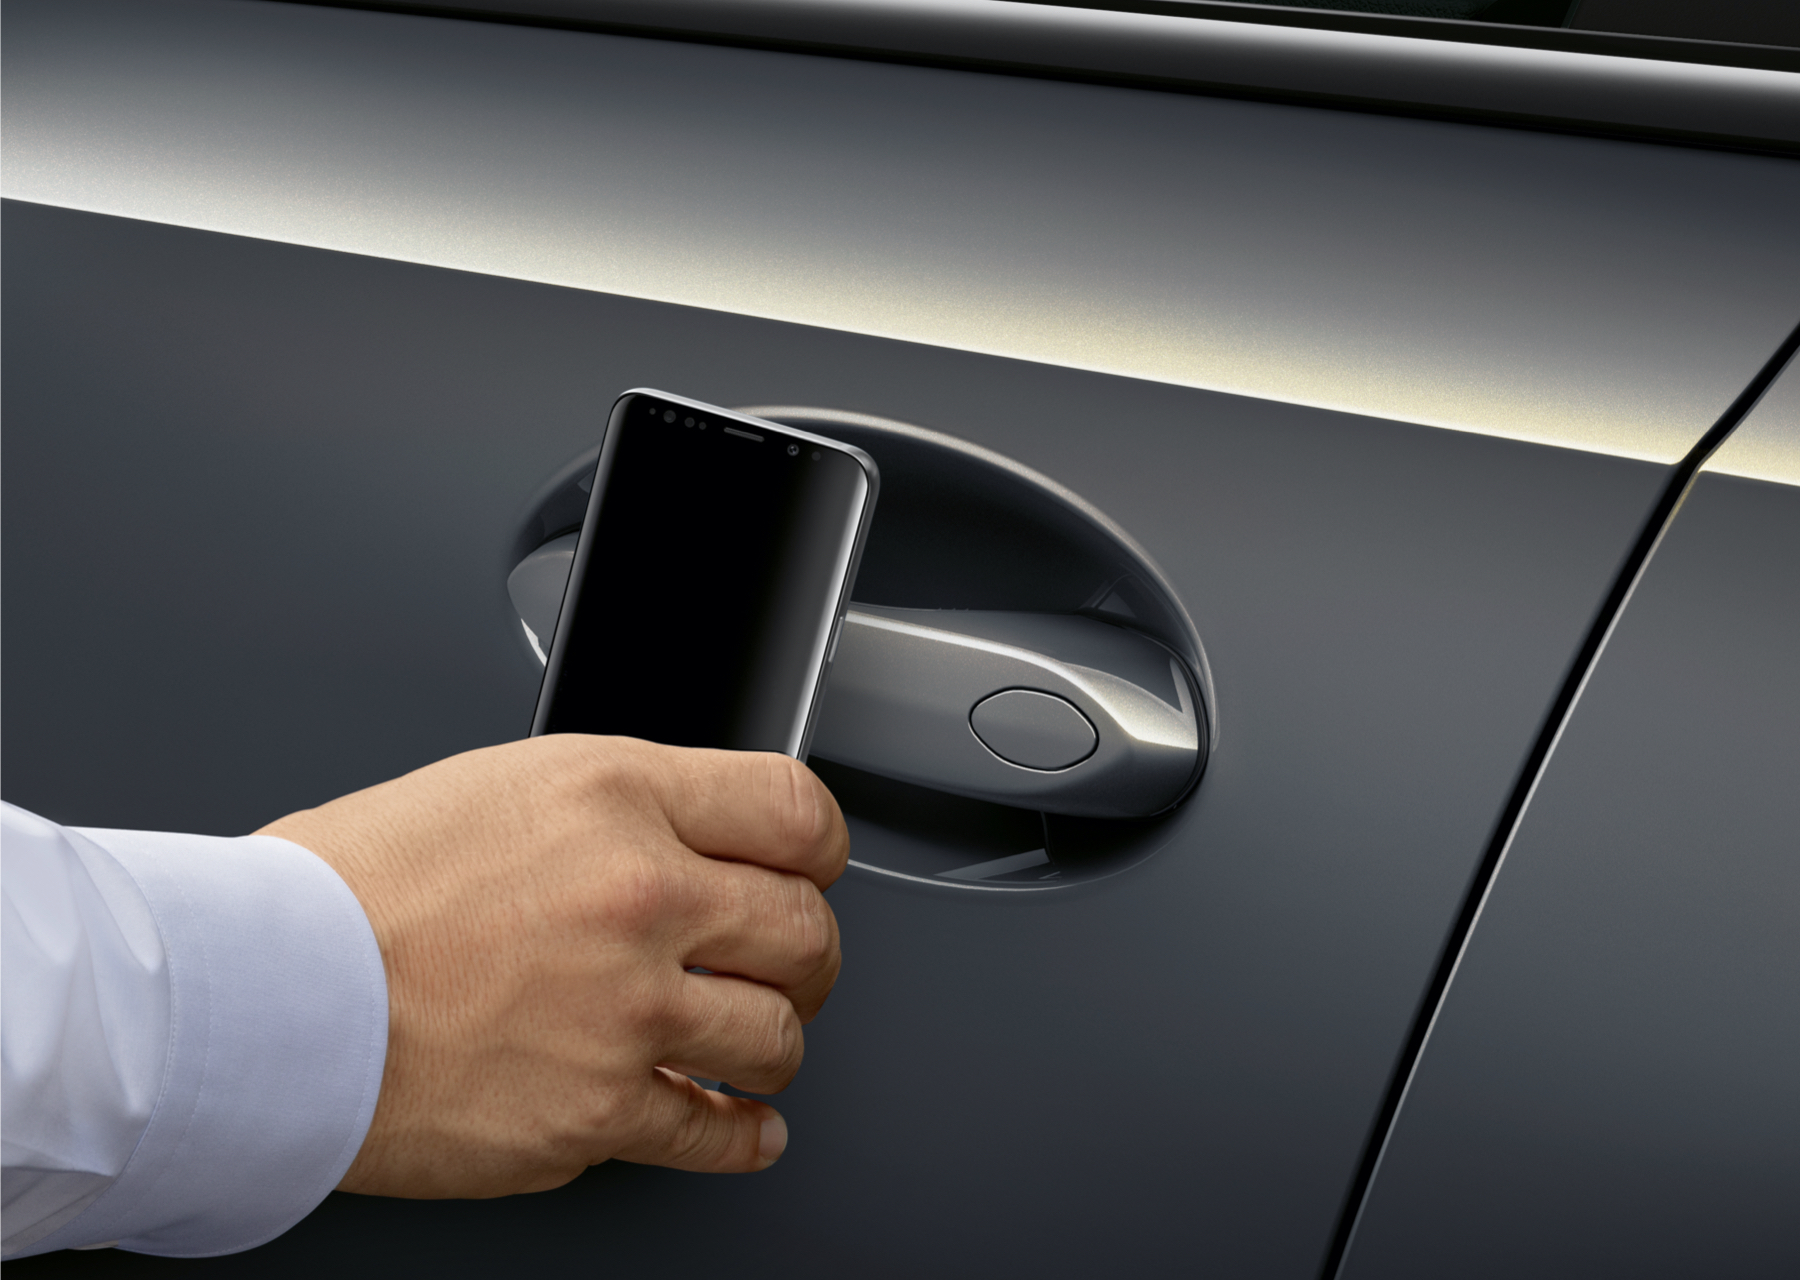 Mobile phone instead of a car key